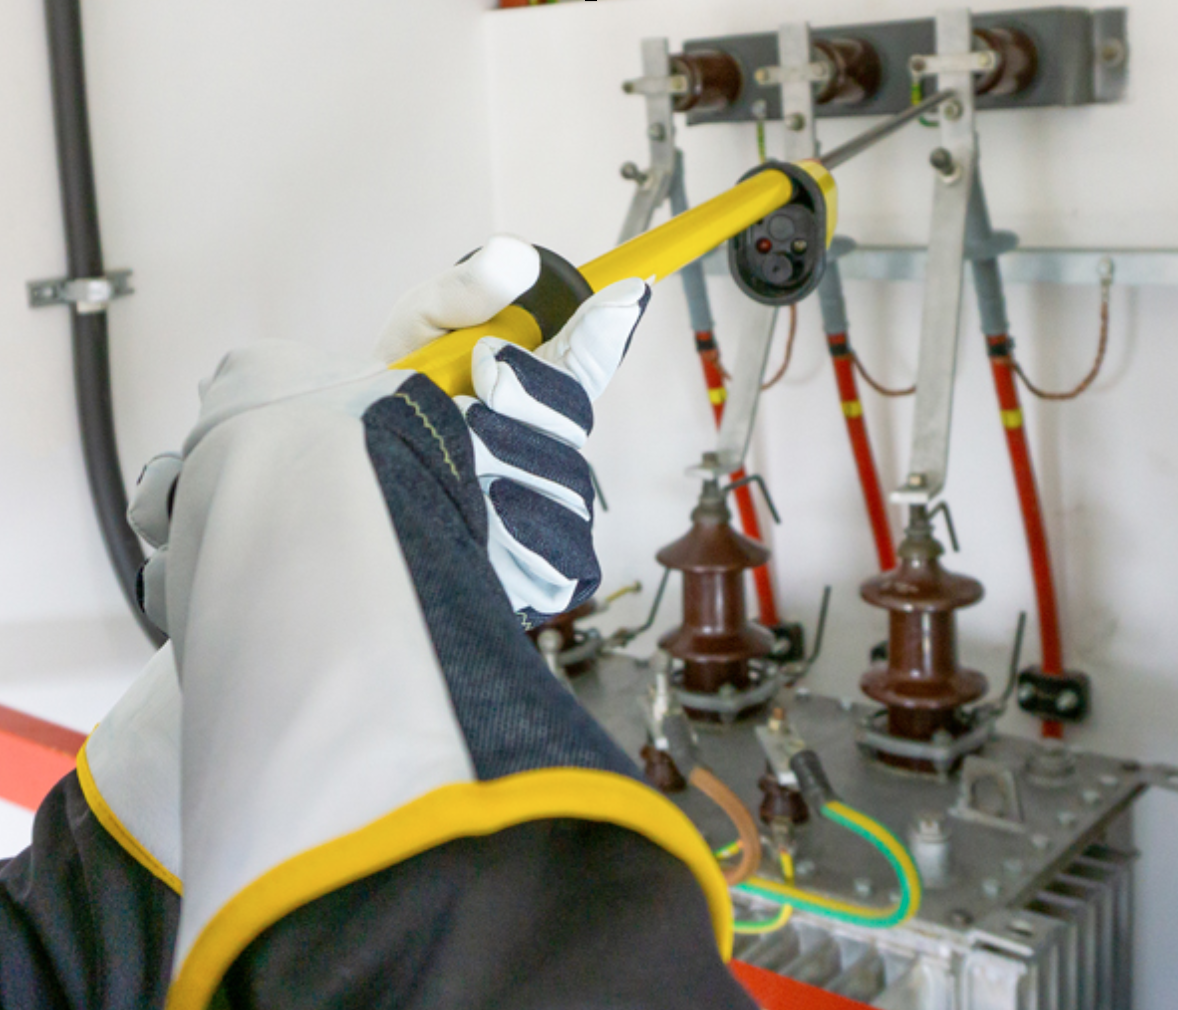 High voltage: key PPE needed within the electrical industry